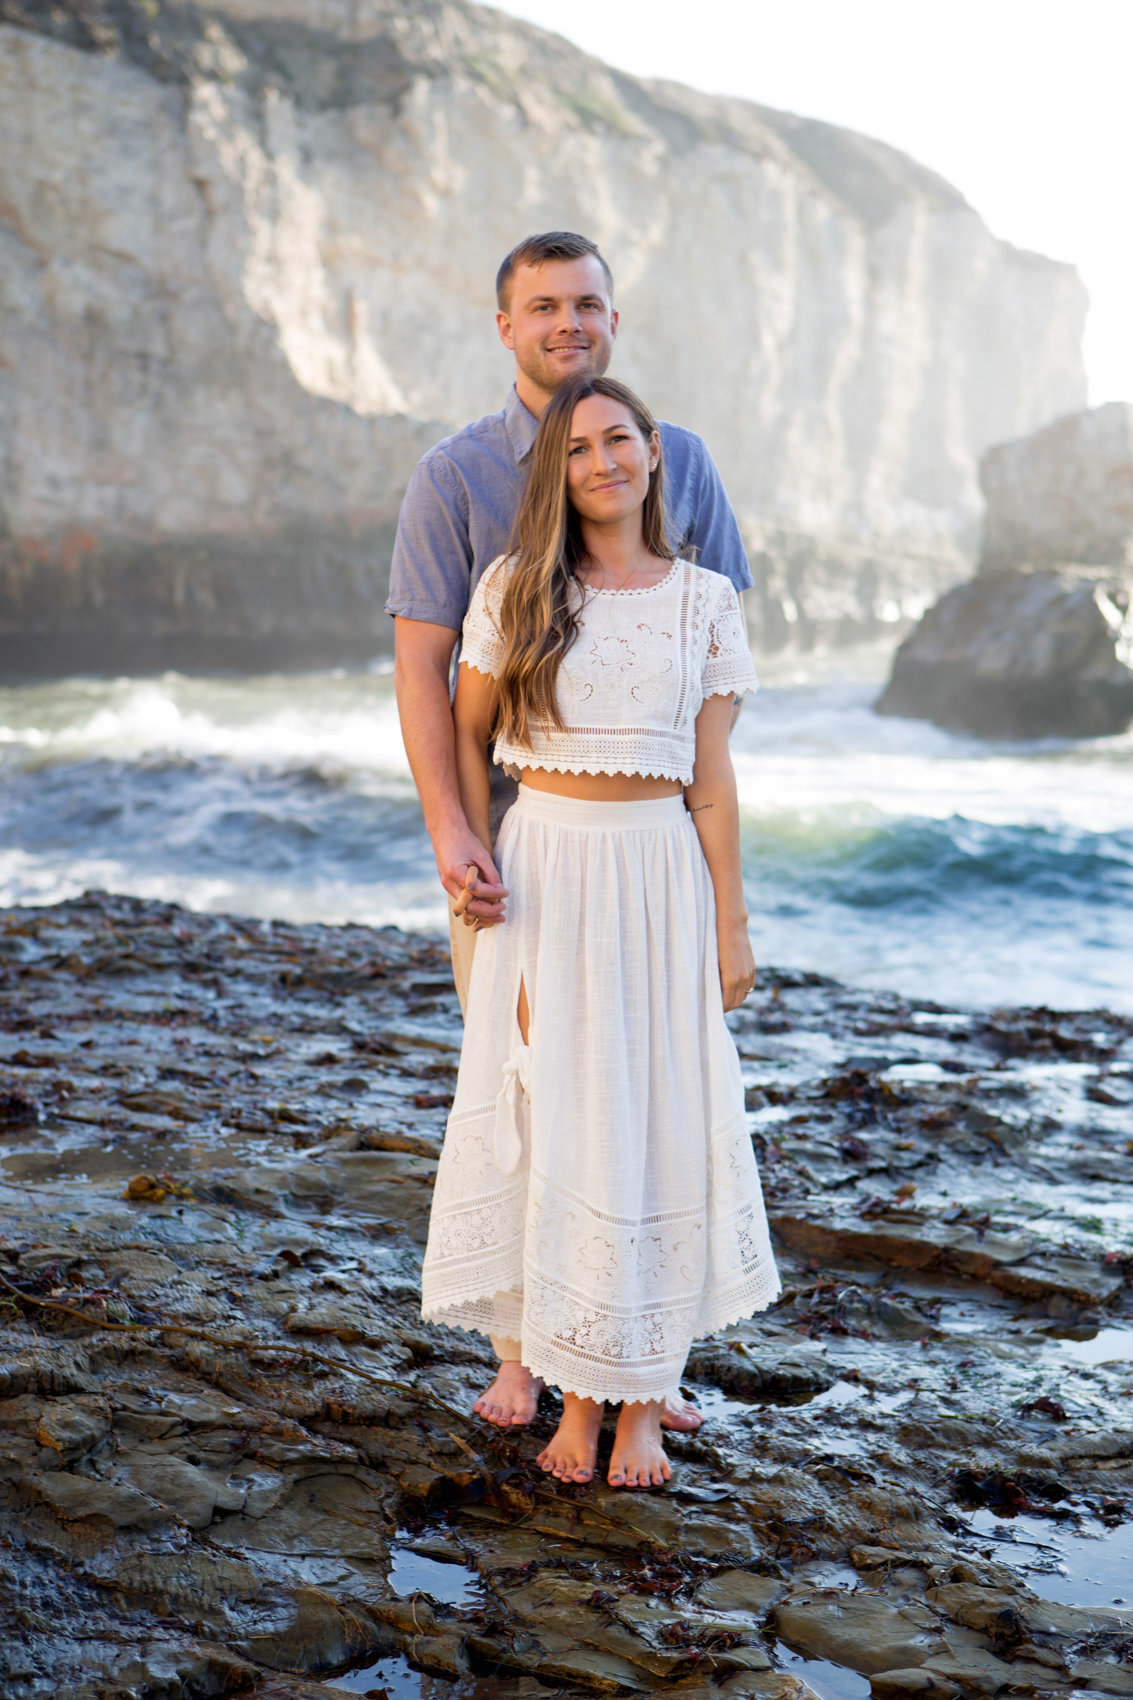 Outdoor engagement session bay area, deneffe studios